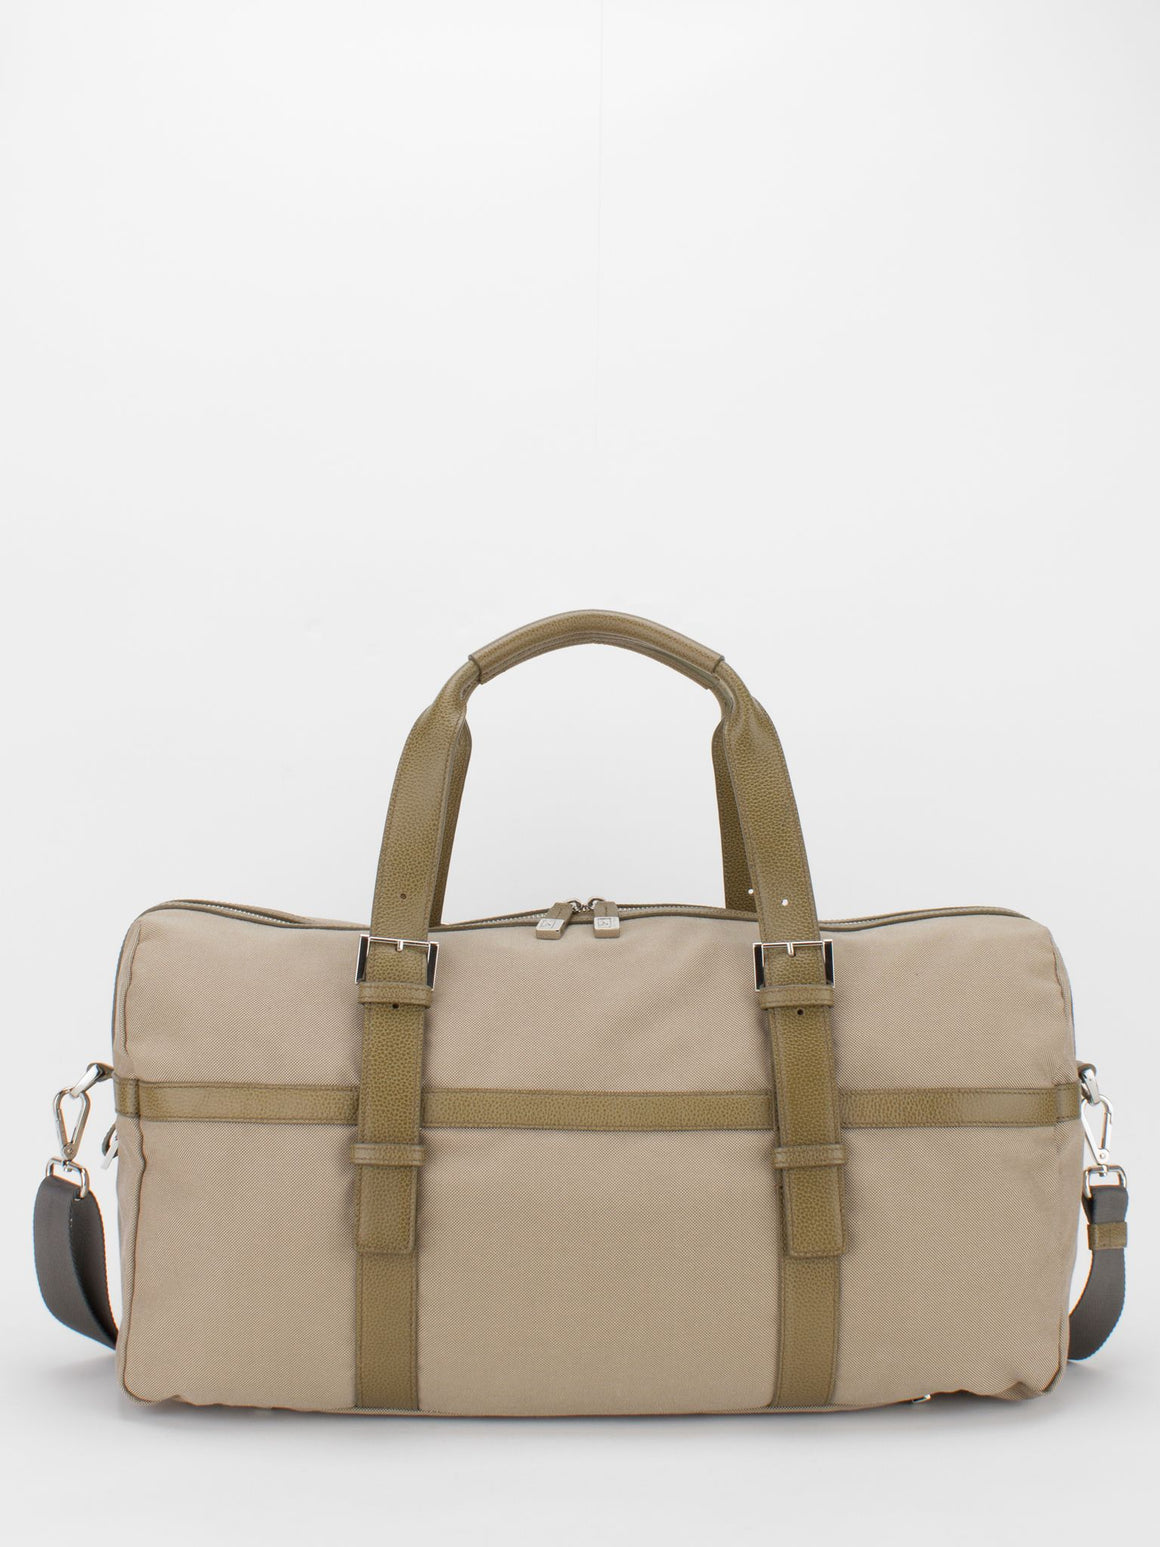 Leo Leather Trim Canvas Duffle Bag - Camel